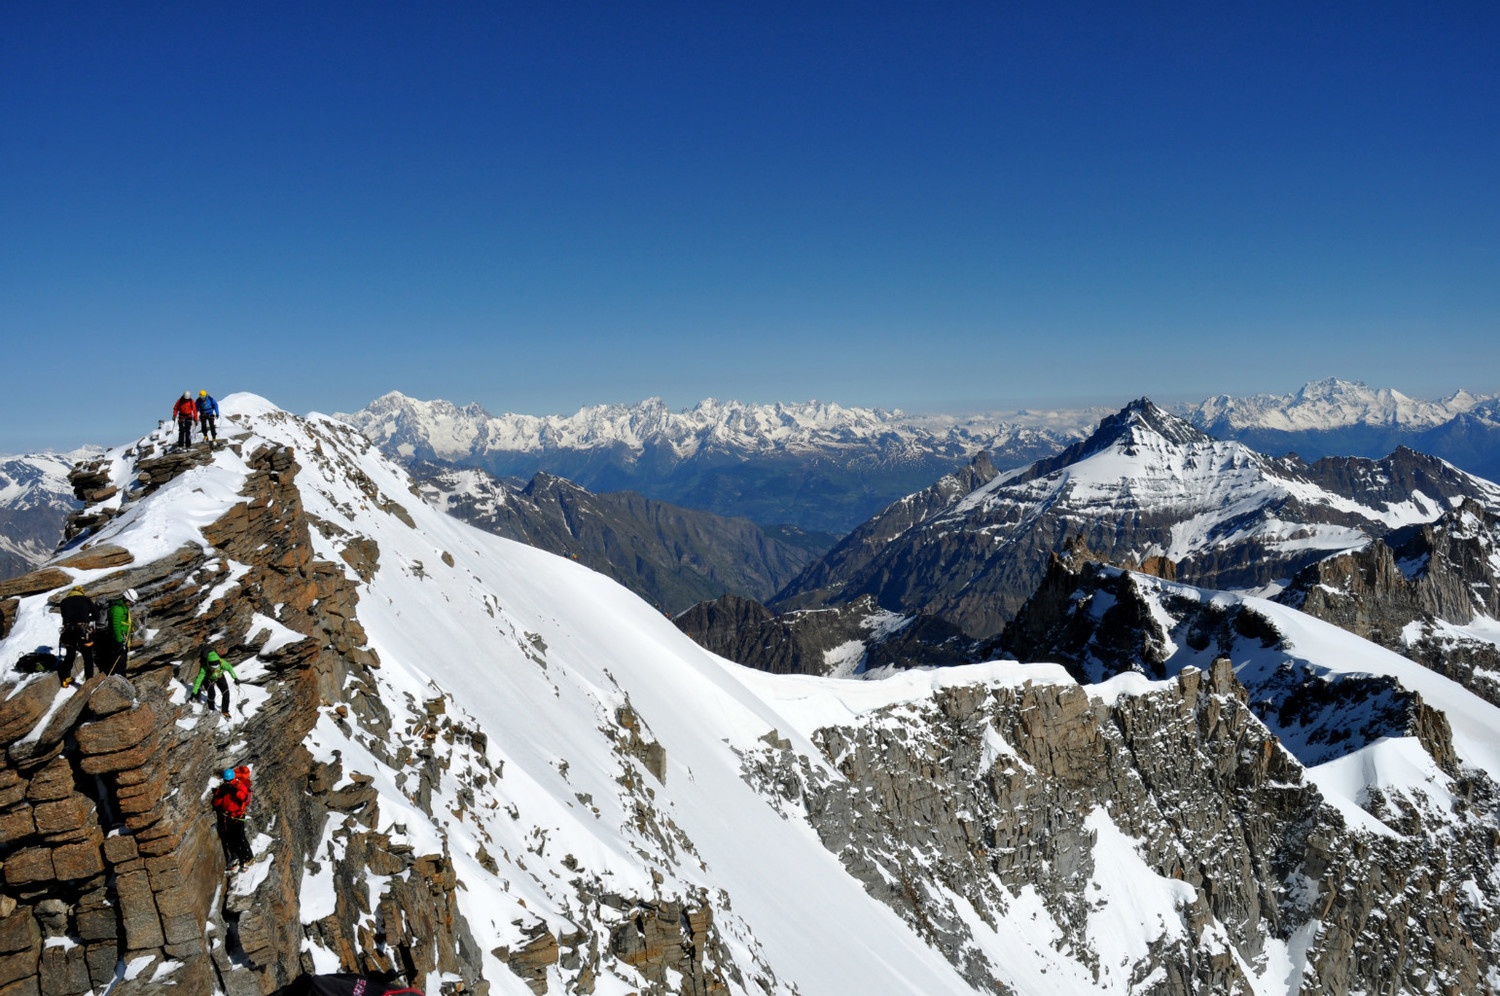 Gran Paradiso - Via normale : view towards the Mont-Blanc Massif and the Grand Combin